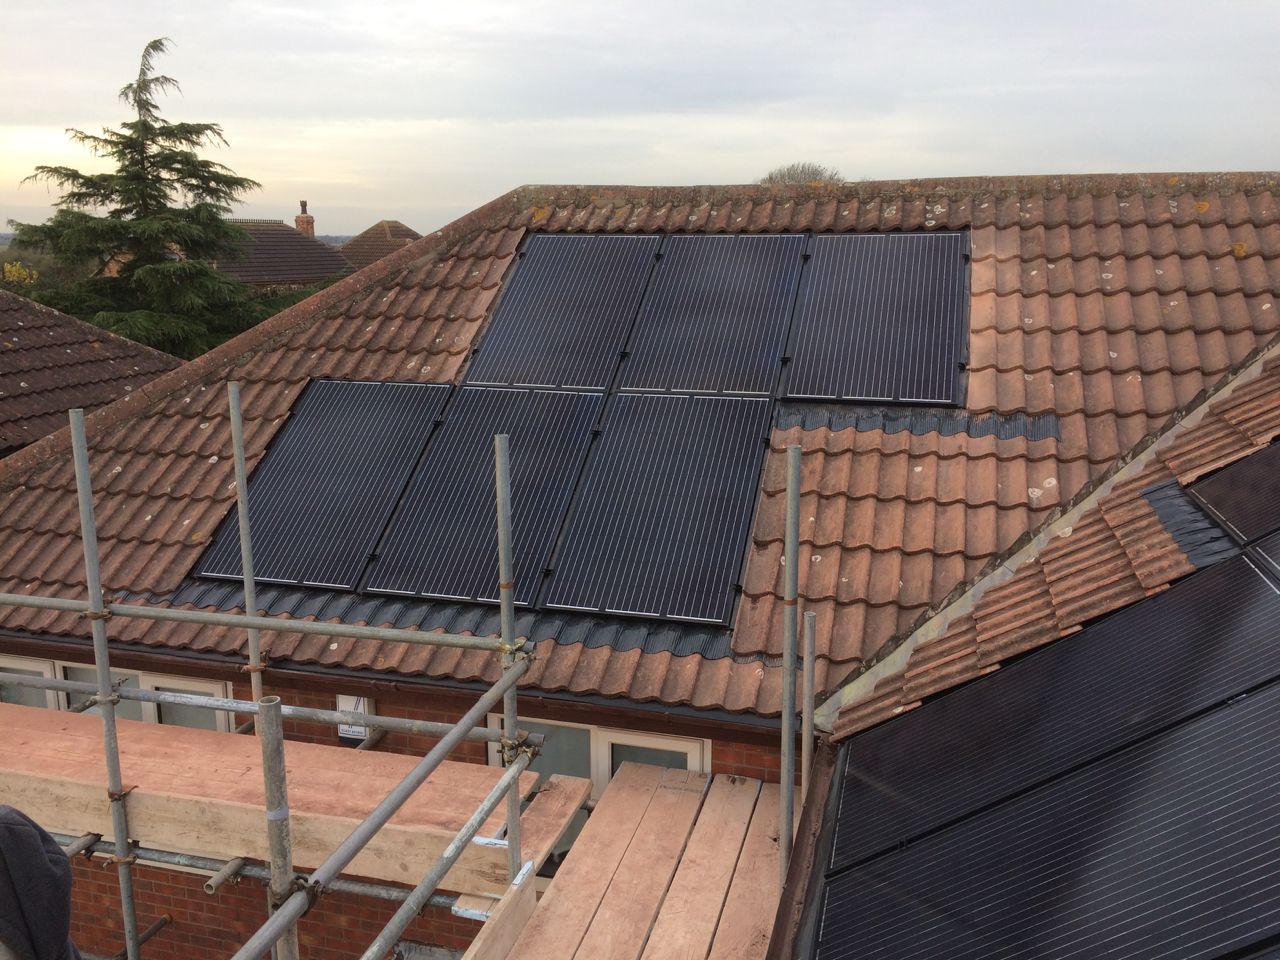 https://www.bluedotroofing.uk/wp-content/uploads/2018/01/Solar-panels-25.jpg